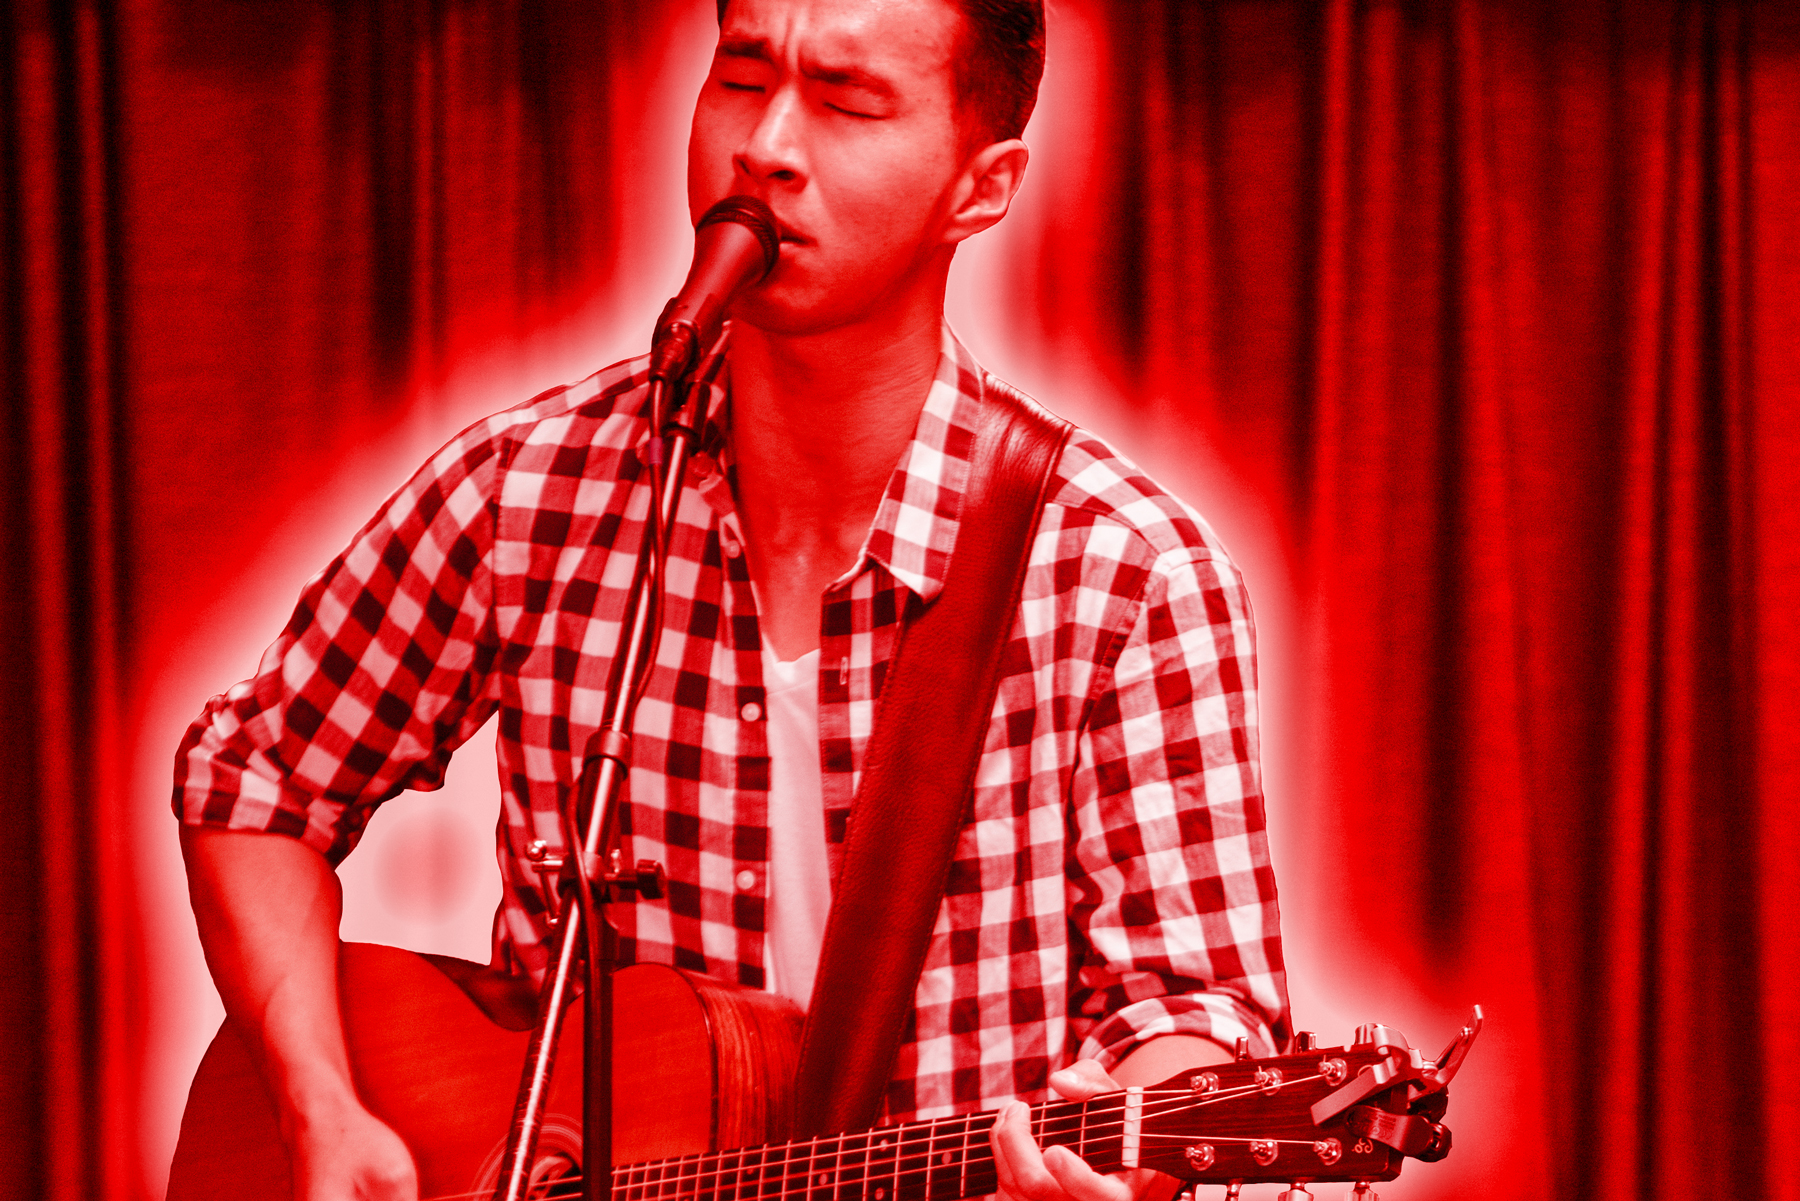 Kenny Eng in Red.jpg